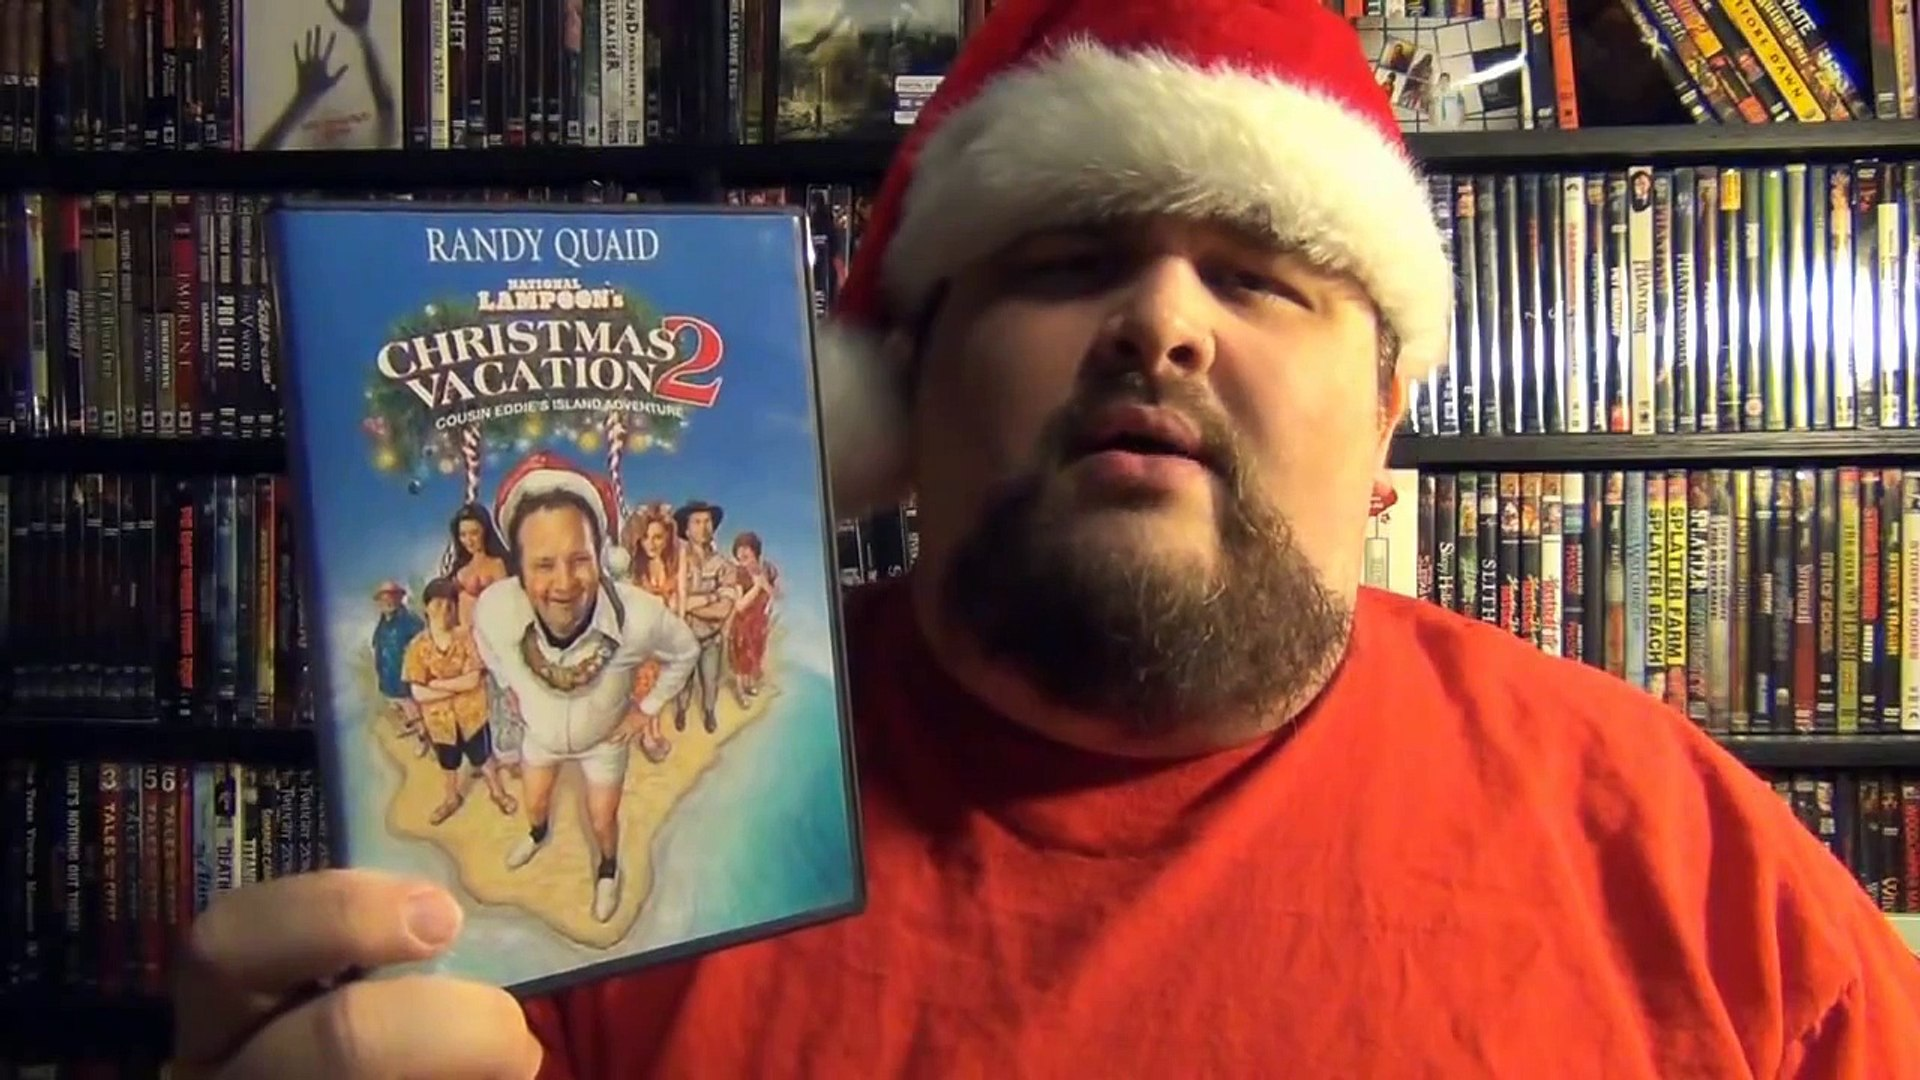 Randy Quaid Christmas Vacation.Christmas Vacation 2 Cousin Eddie S Island Adventure 2003 Tv Trailer